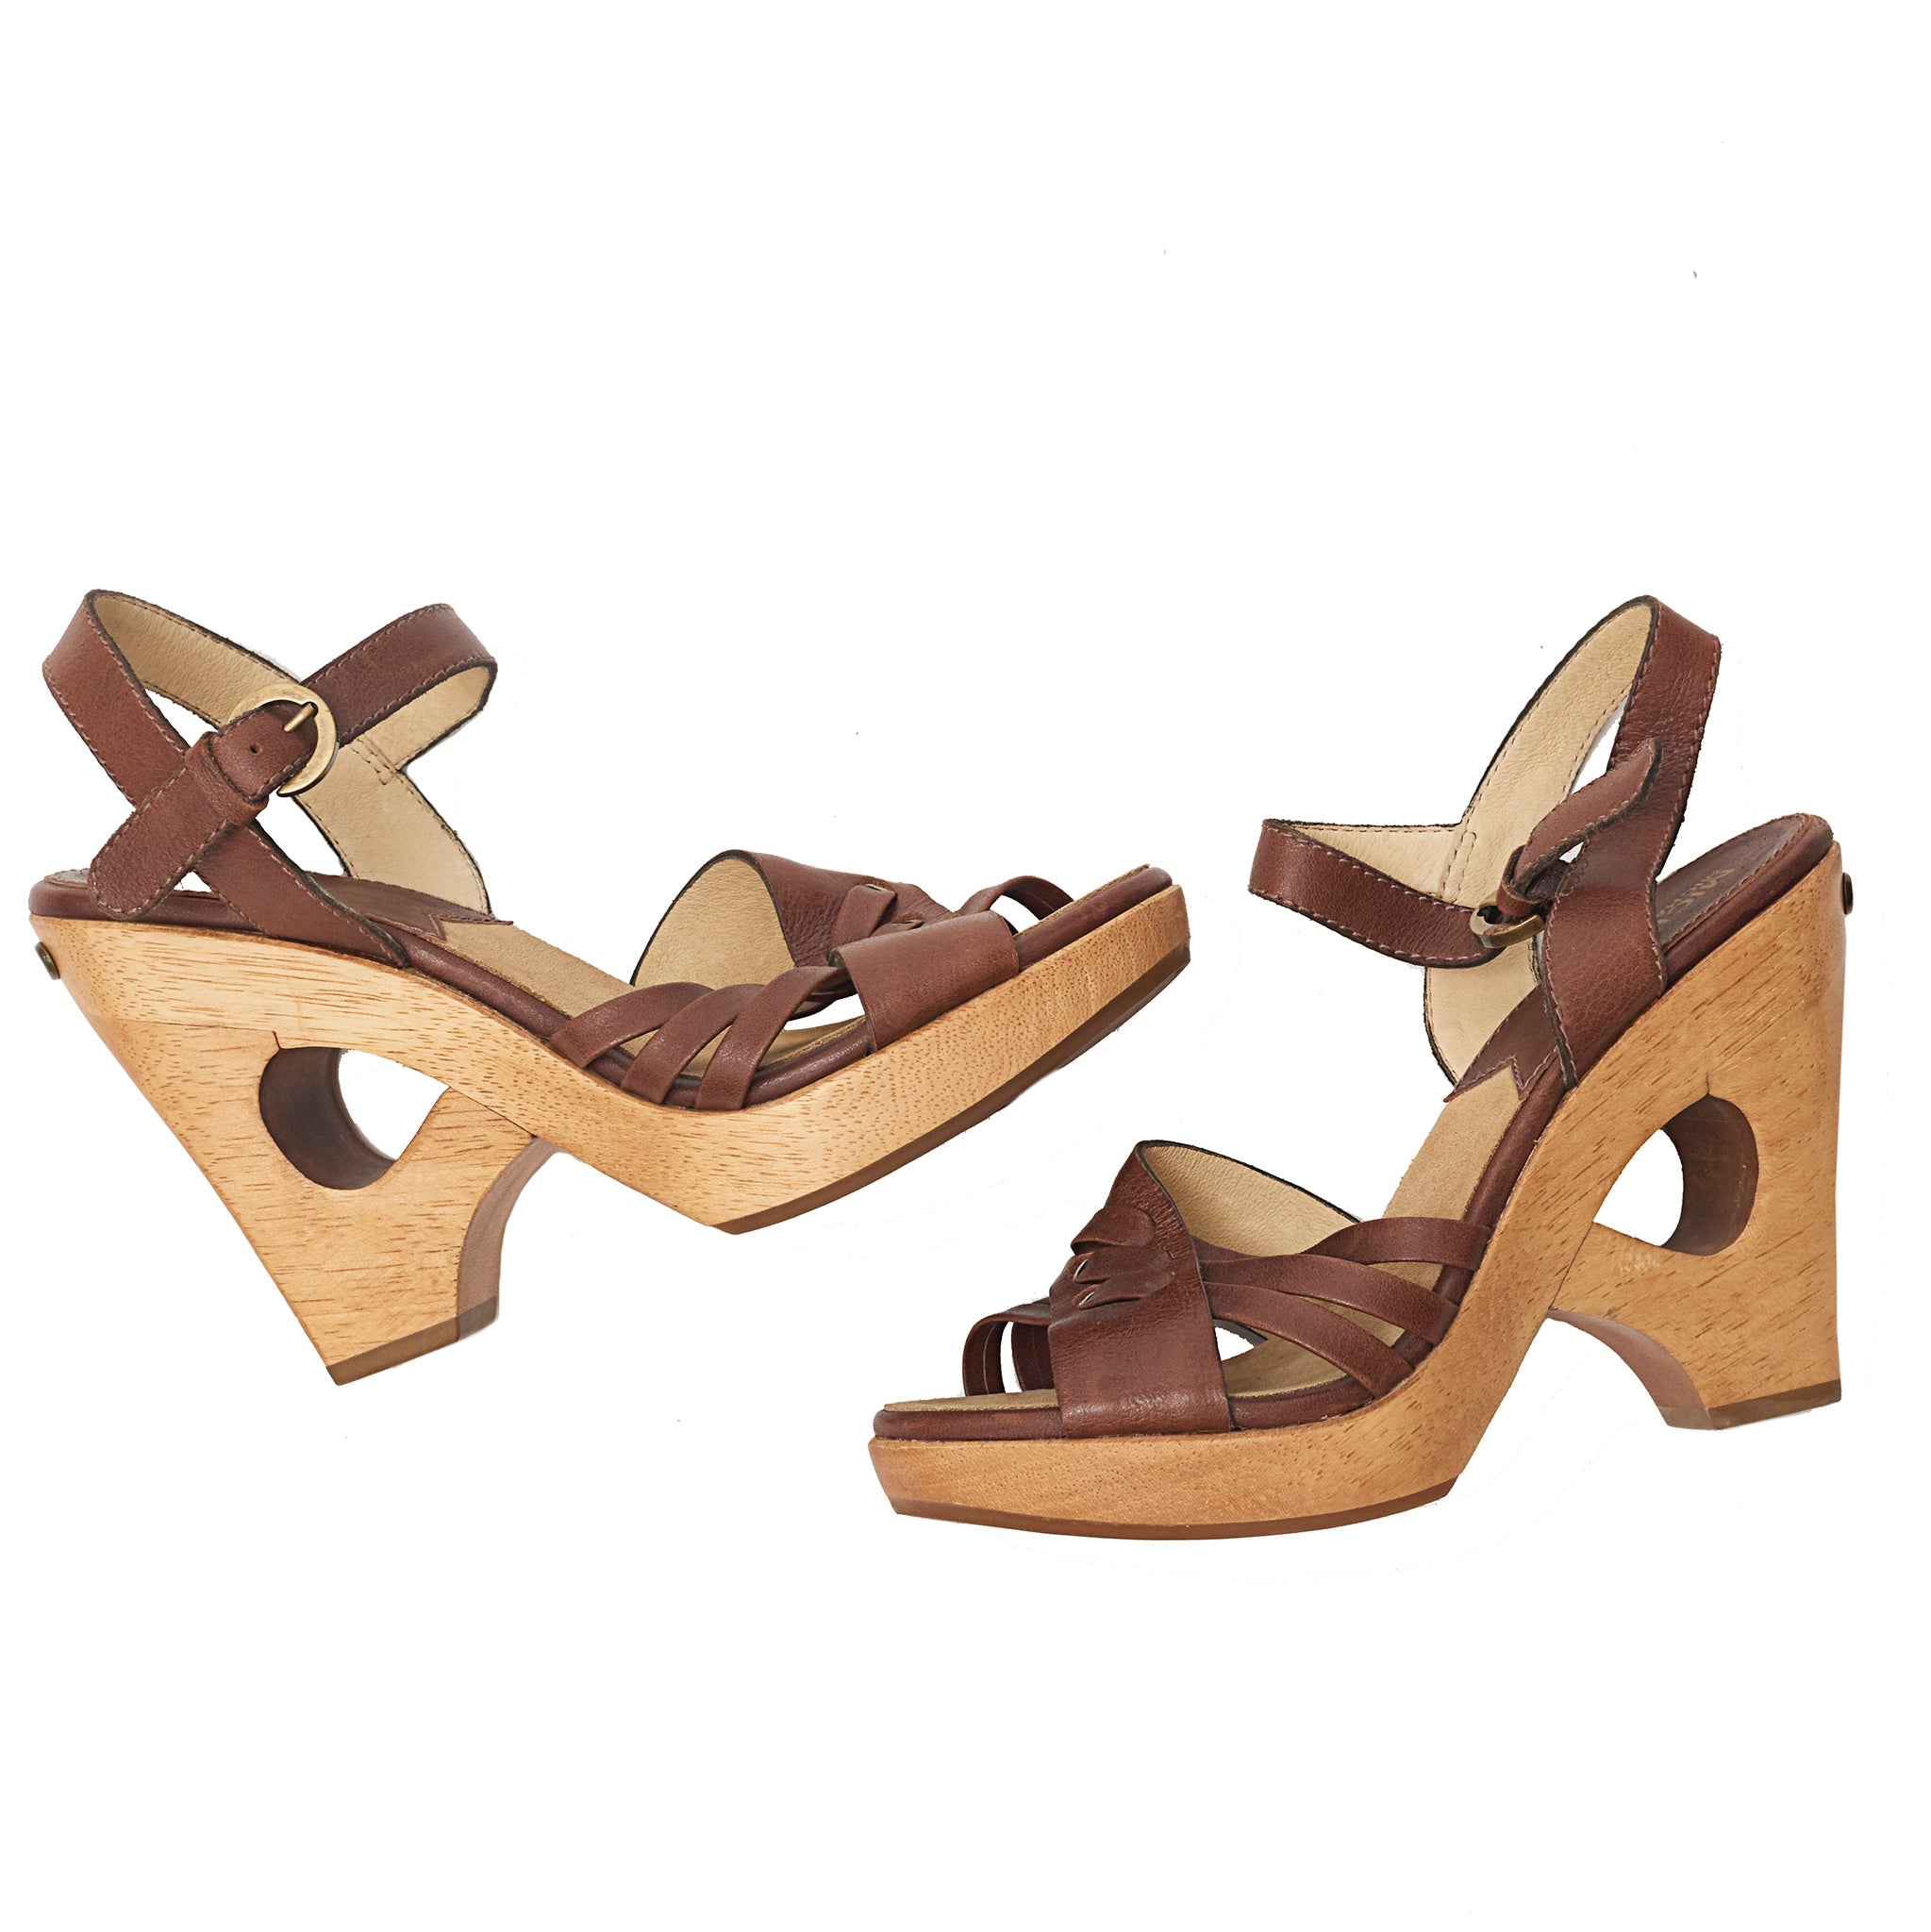 Michael Michael Kors Wooden-heeled Sandals